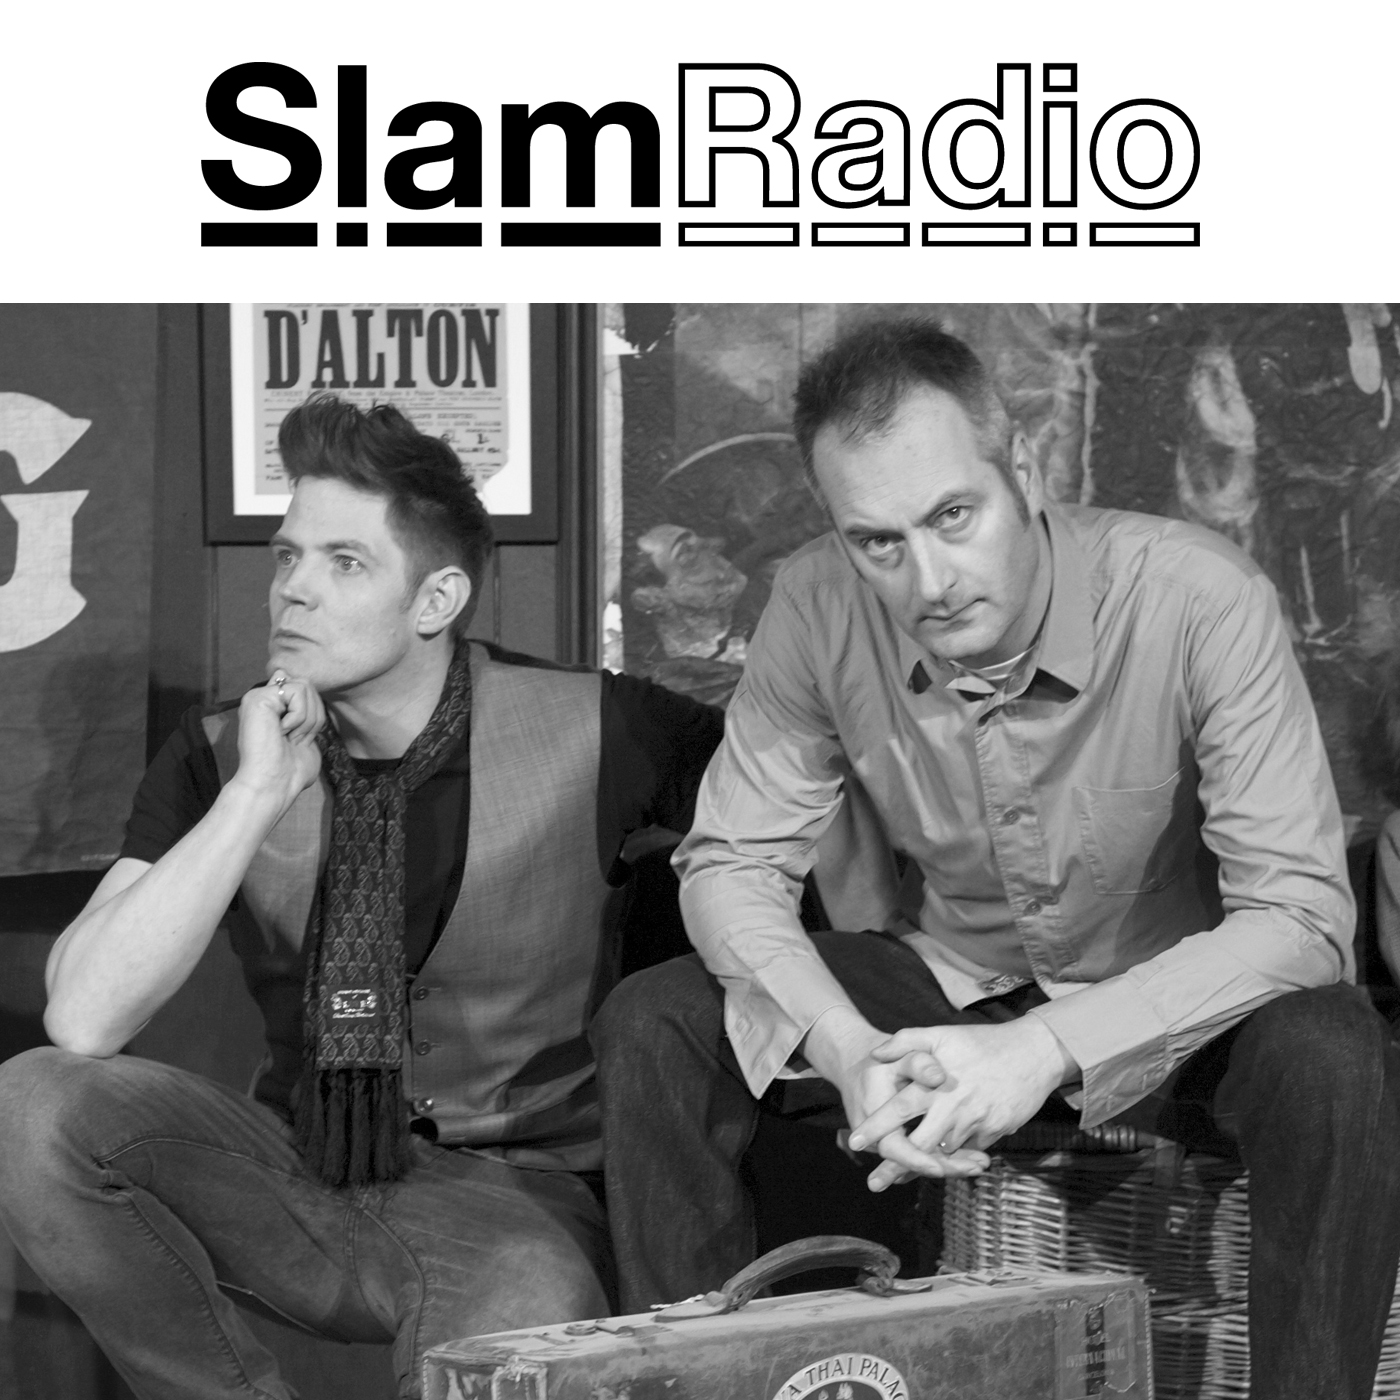 Delta Podcasts - Slam Radio by Soma Records (03.11.2017)